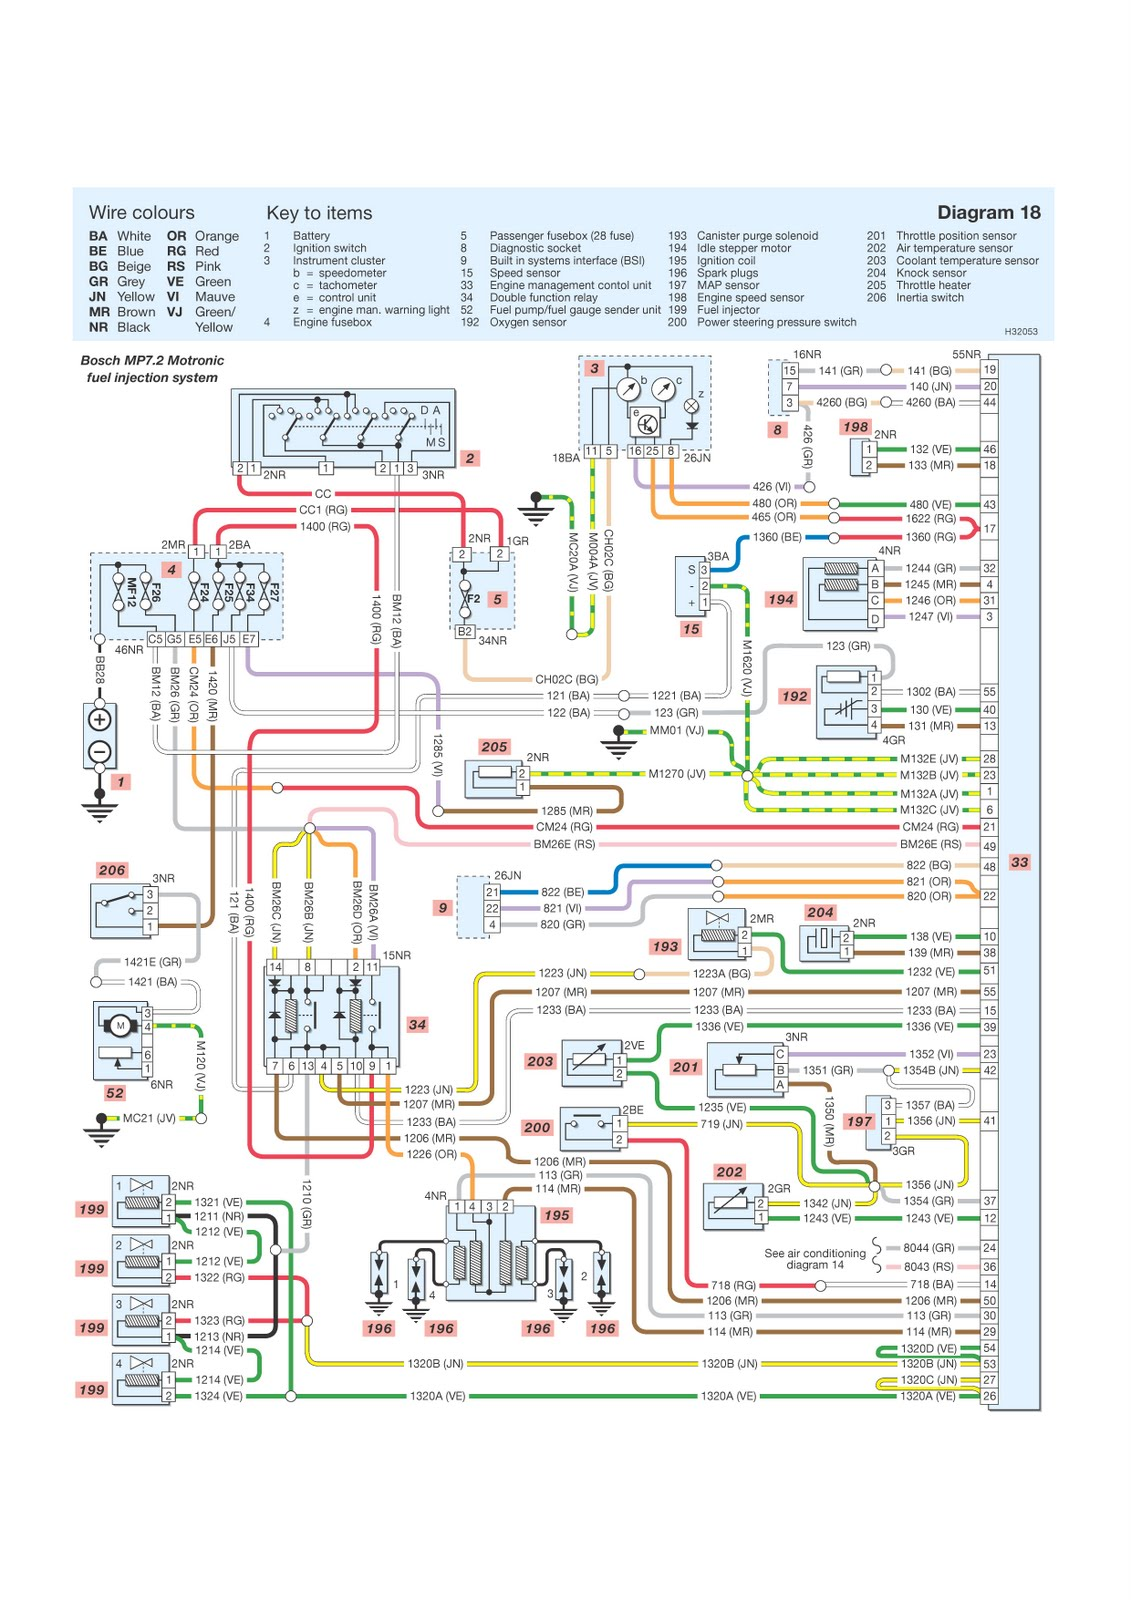 Awesome May 2011 All About Wiring Diagrams Wiring Diagrams For Your Car Or Wiring Cloud Monangrecoveryedborg